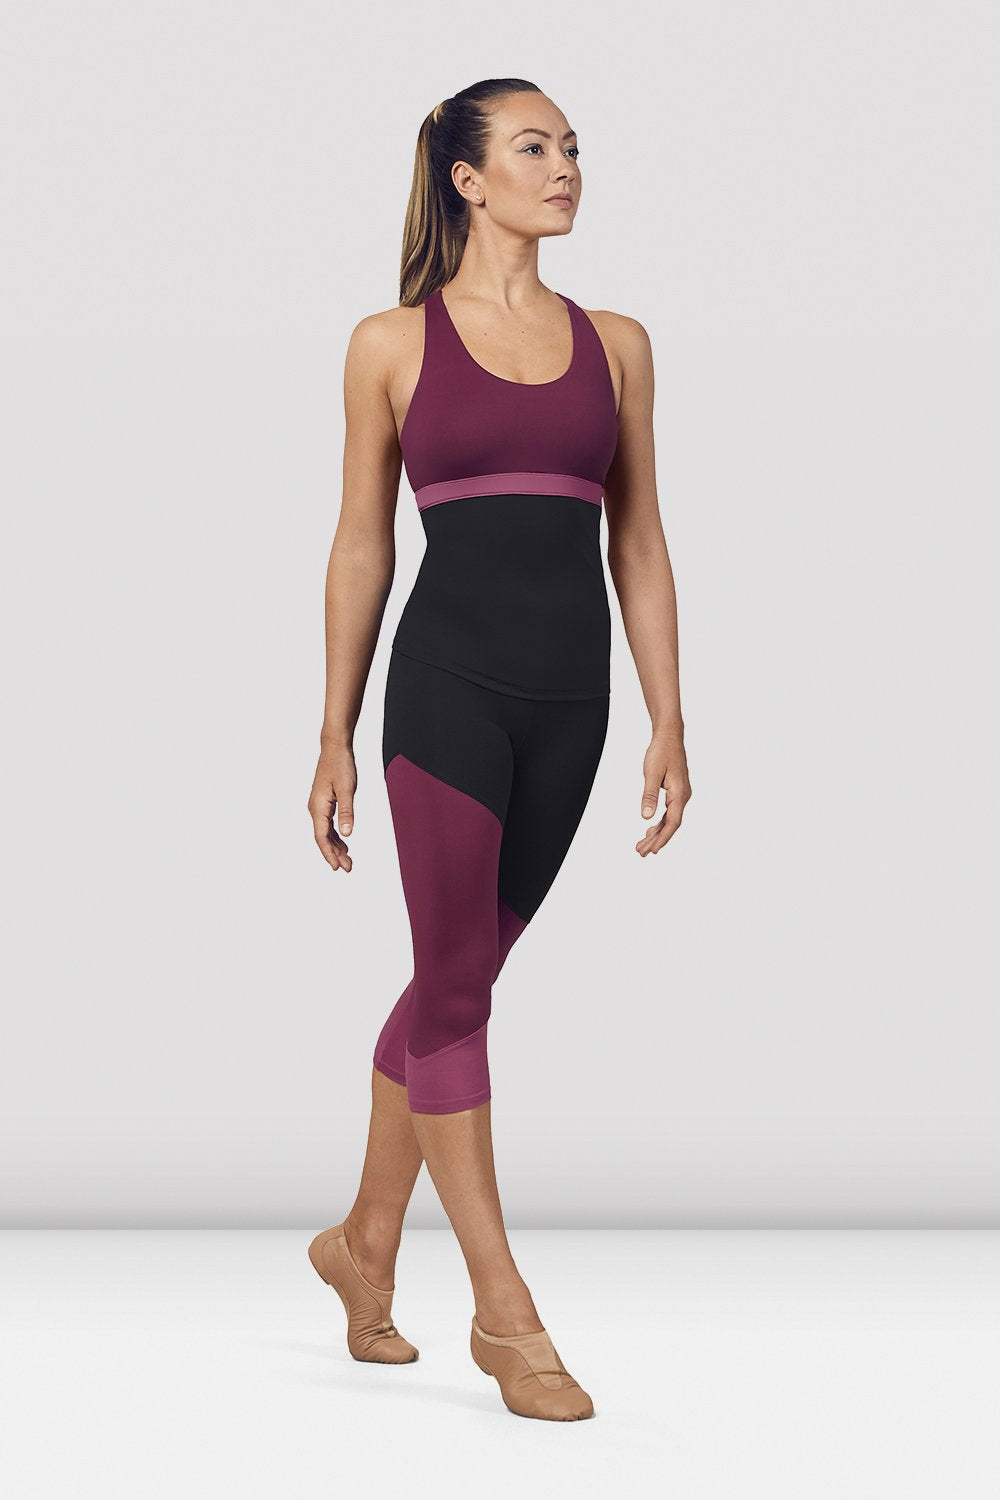 Dewberry Bloch Ladies Scoop Neck Cross Back Tank Top on female model in parallel fourth position on releve facing corner